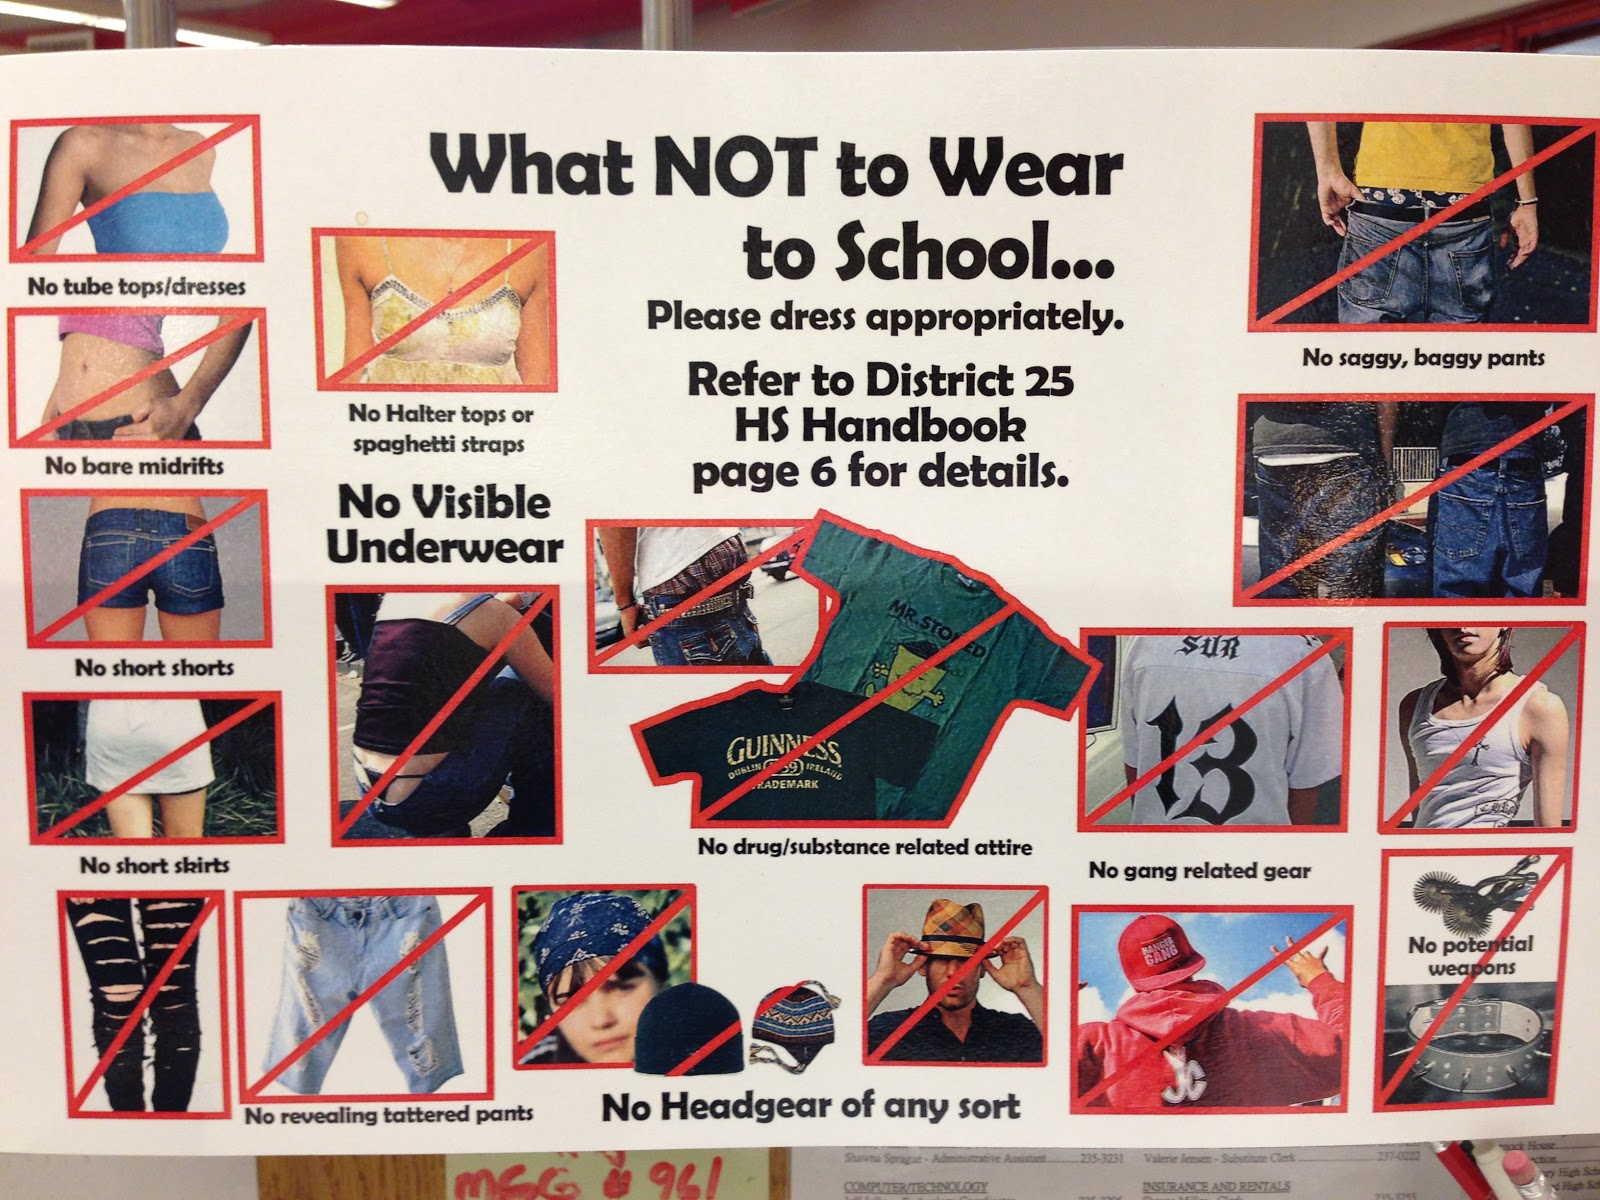 Wear not to what to school pictures